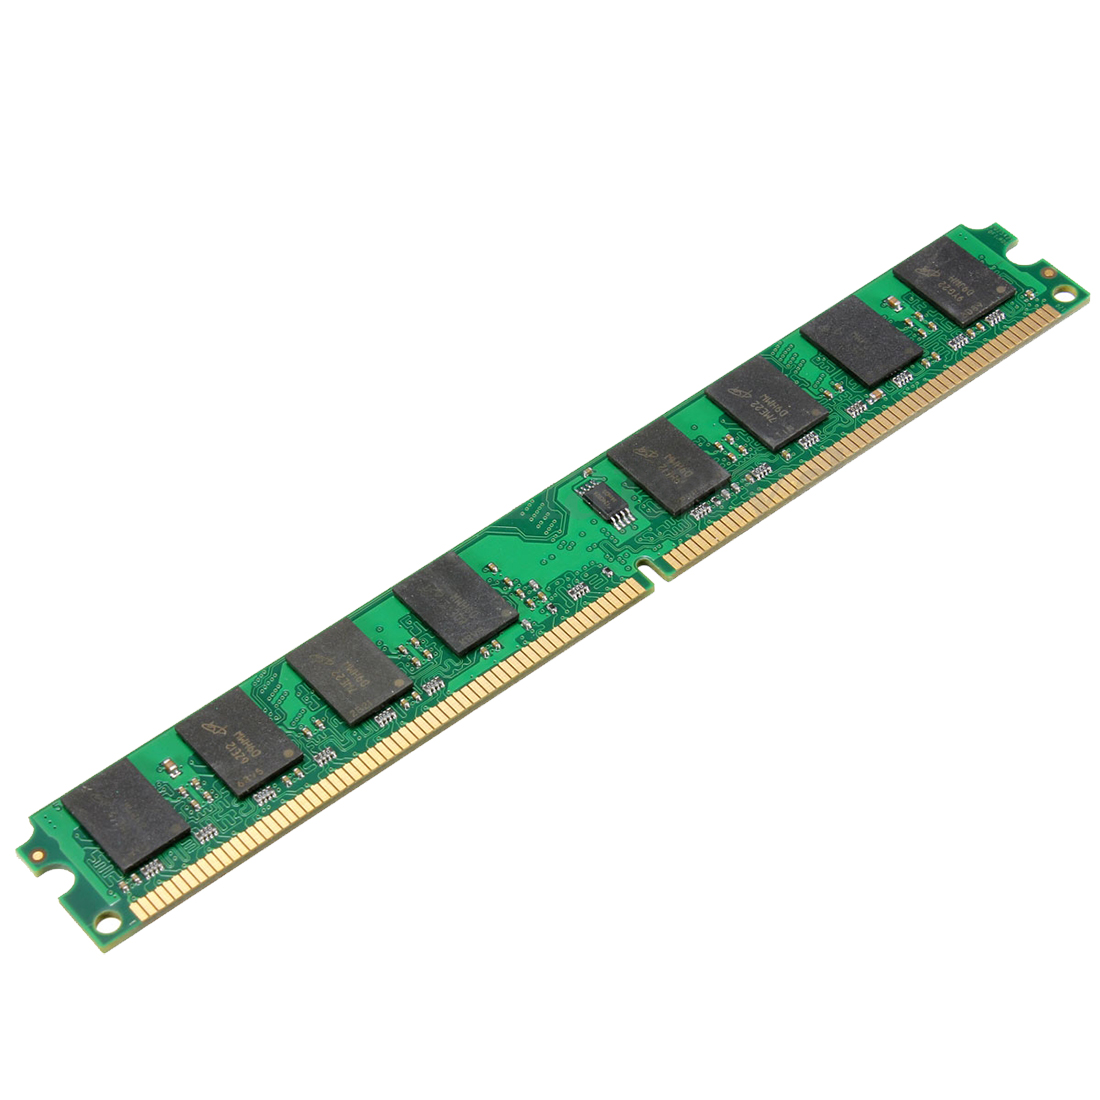 hot-<font><b>4</b></font> <font><b>GB</b></font> (2x2GB) <font><b>DDR2</b></font> PC2-6400 <font><b>DDR2</b></font>-800 MHZ MEMORY DIMM PC DESKTOP RAM for AMD 240 PIN image